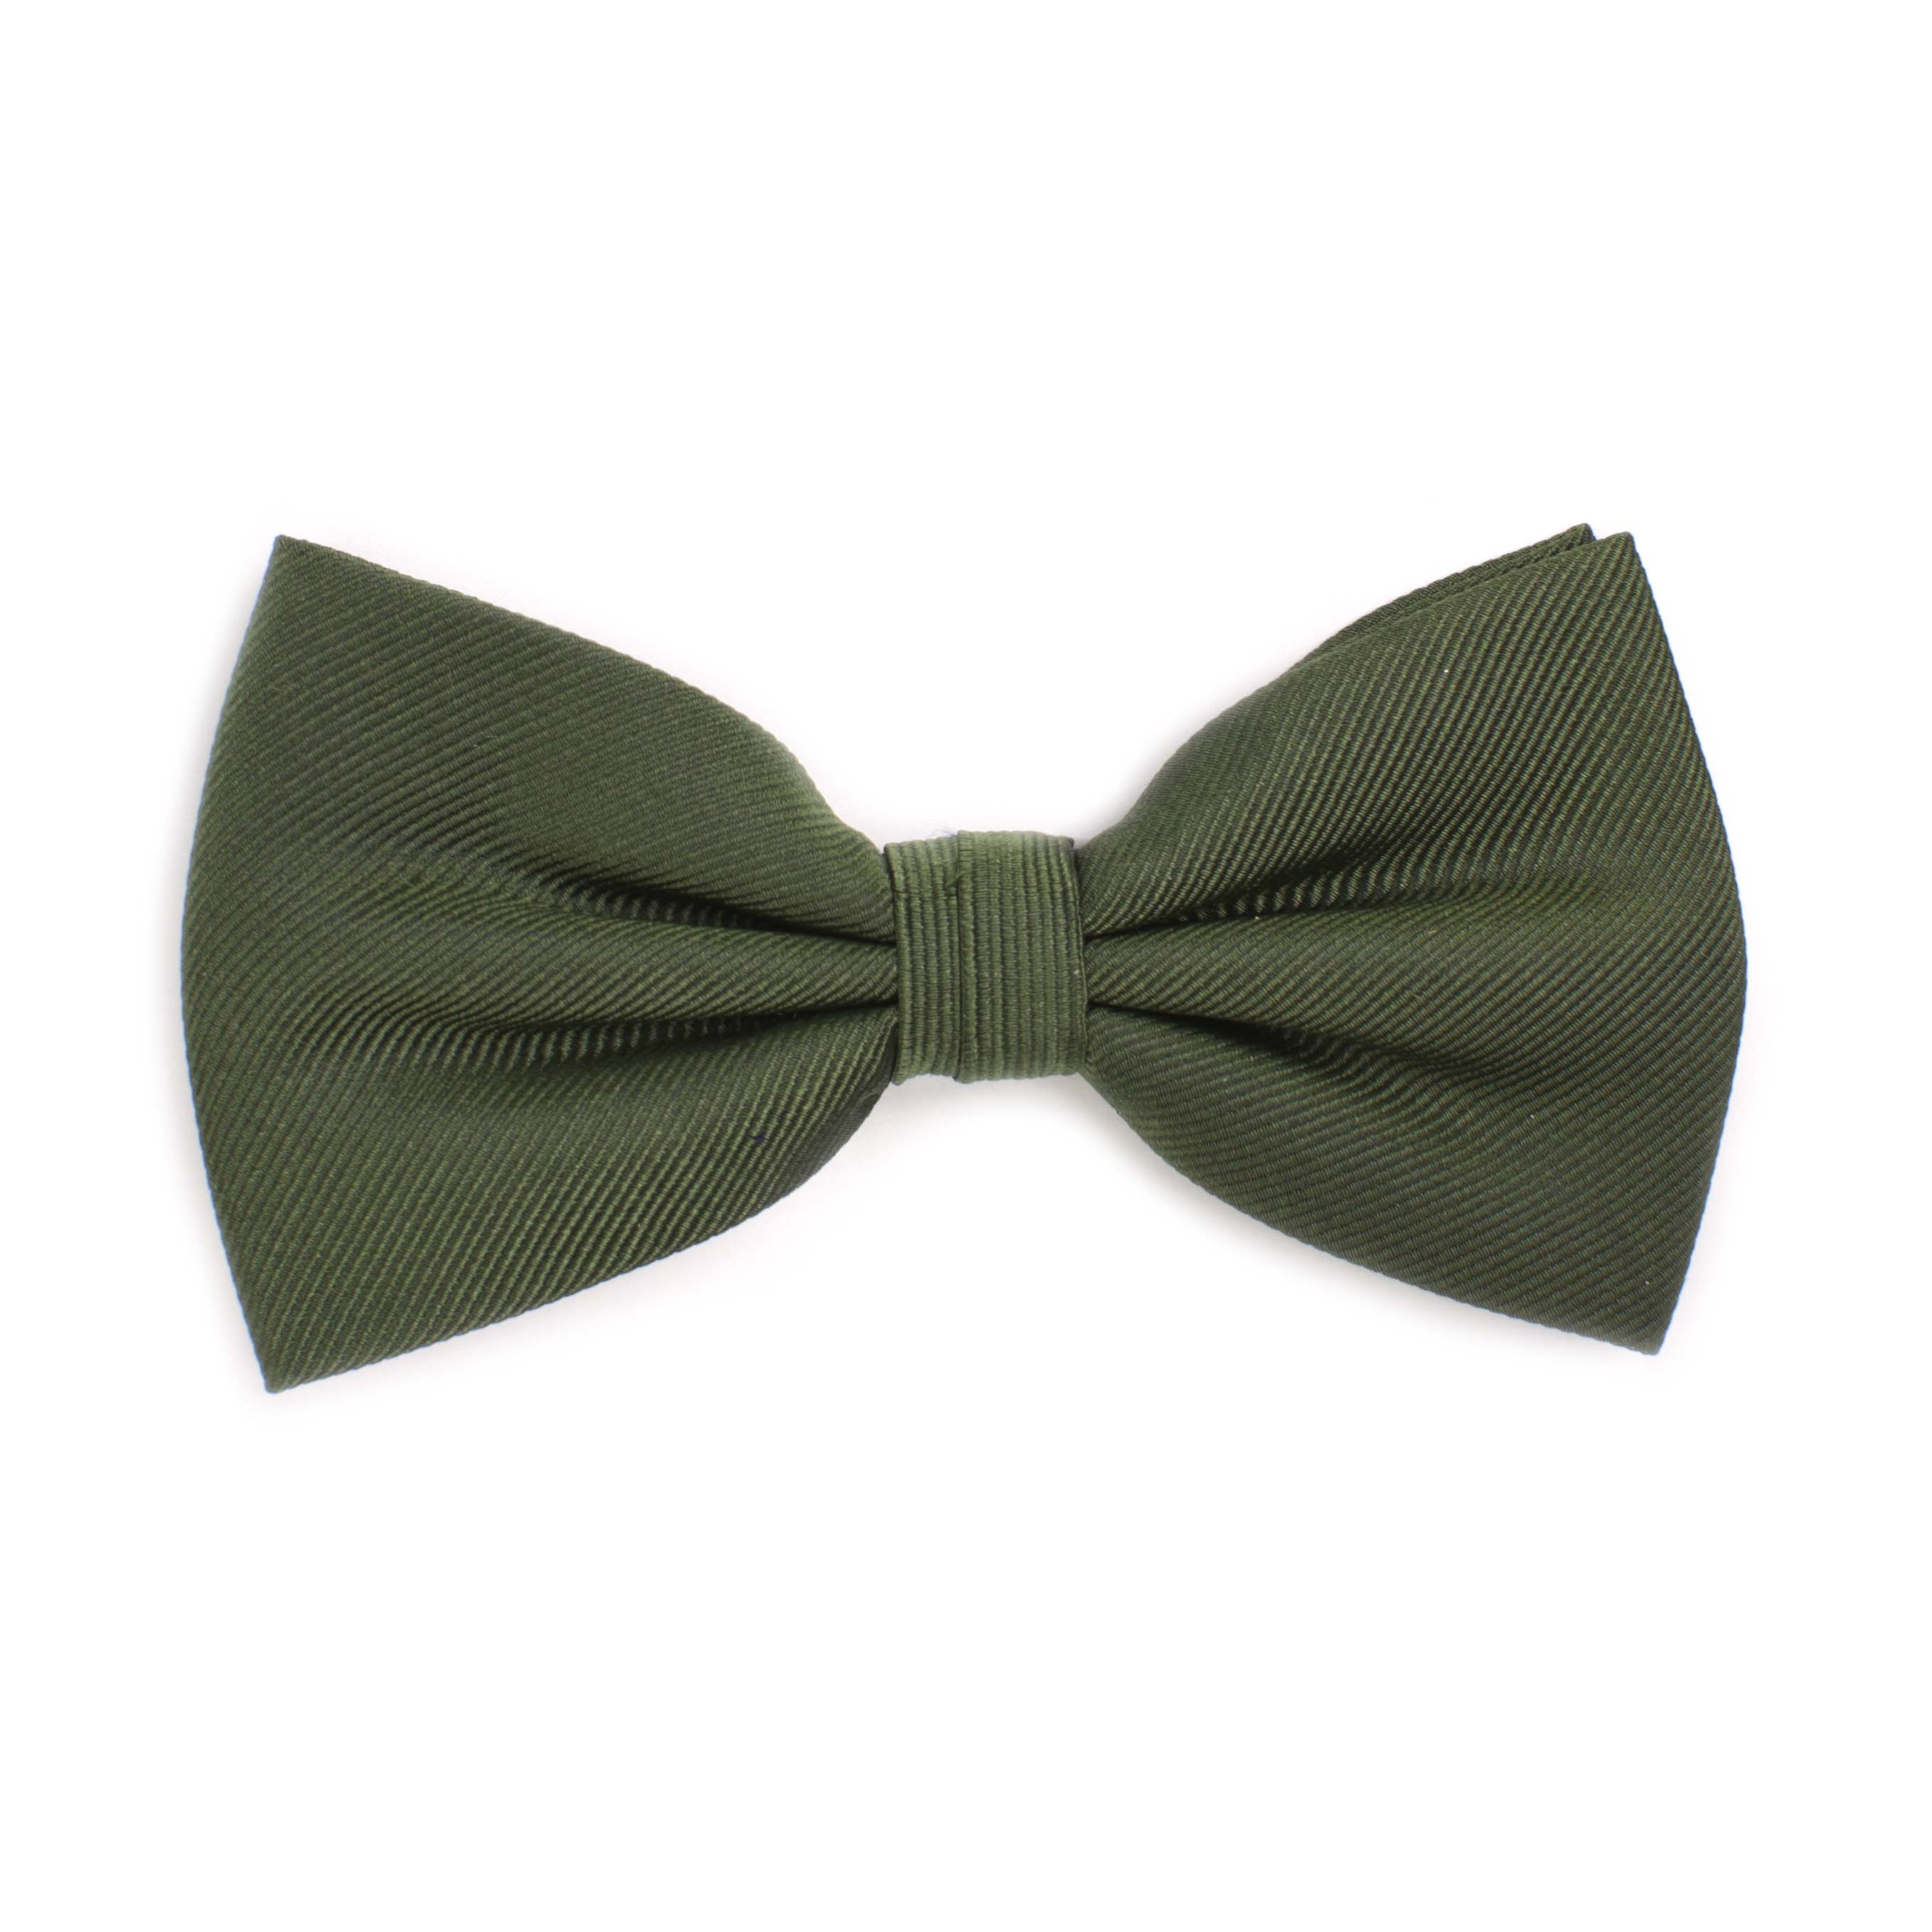 Bow tie classic ribbed green